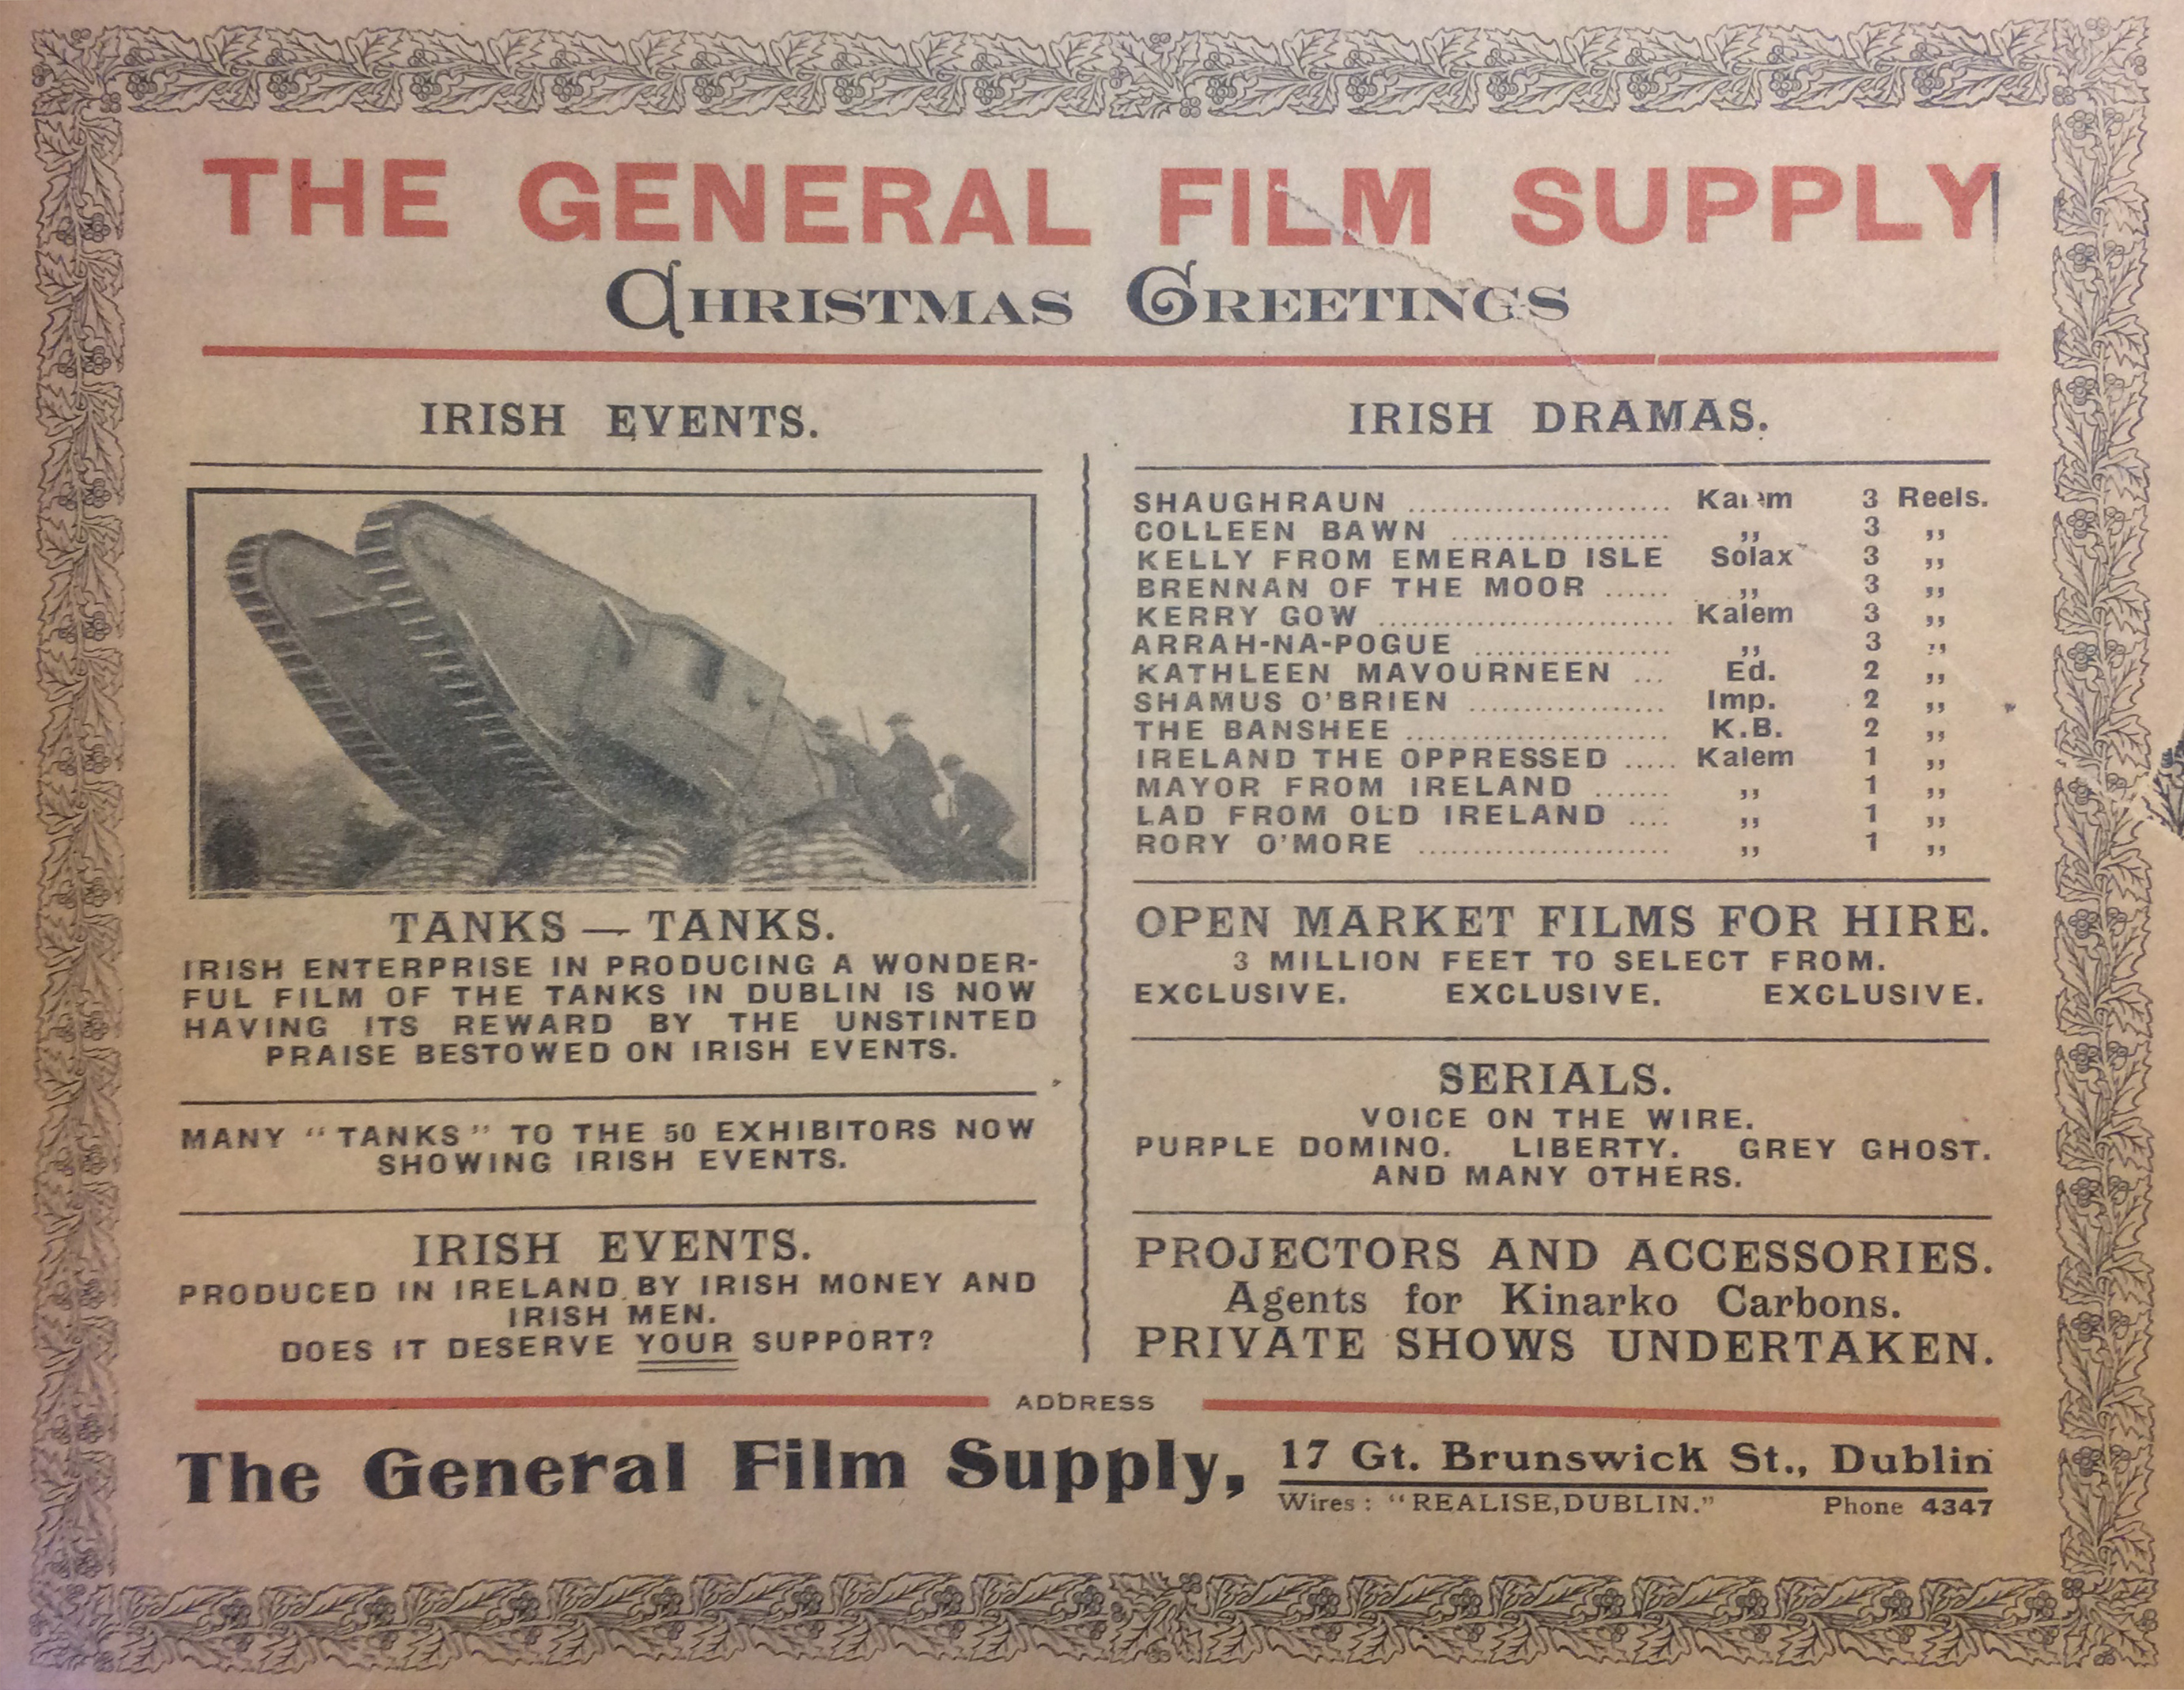 Film Production Companies Early Irish Cinema Reel Pioneer Masterpiece Mp 2000 The General Supply Placed This Ad Prominently On Cover Of December Issue Limelight